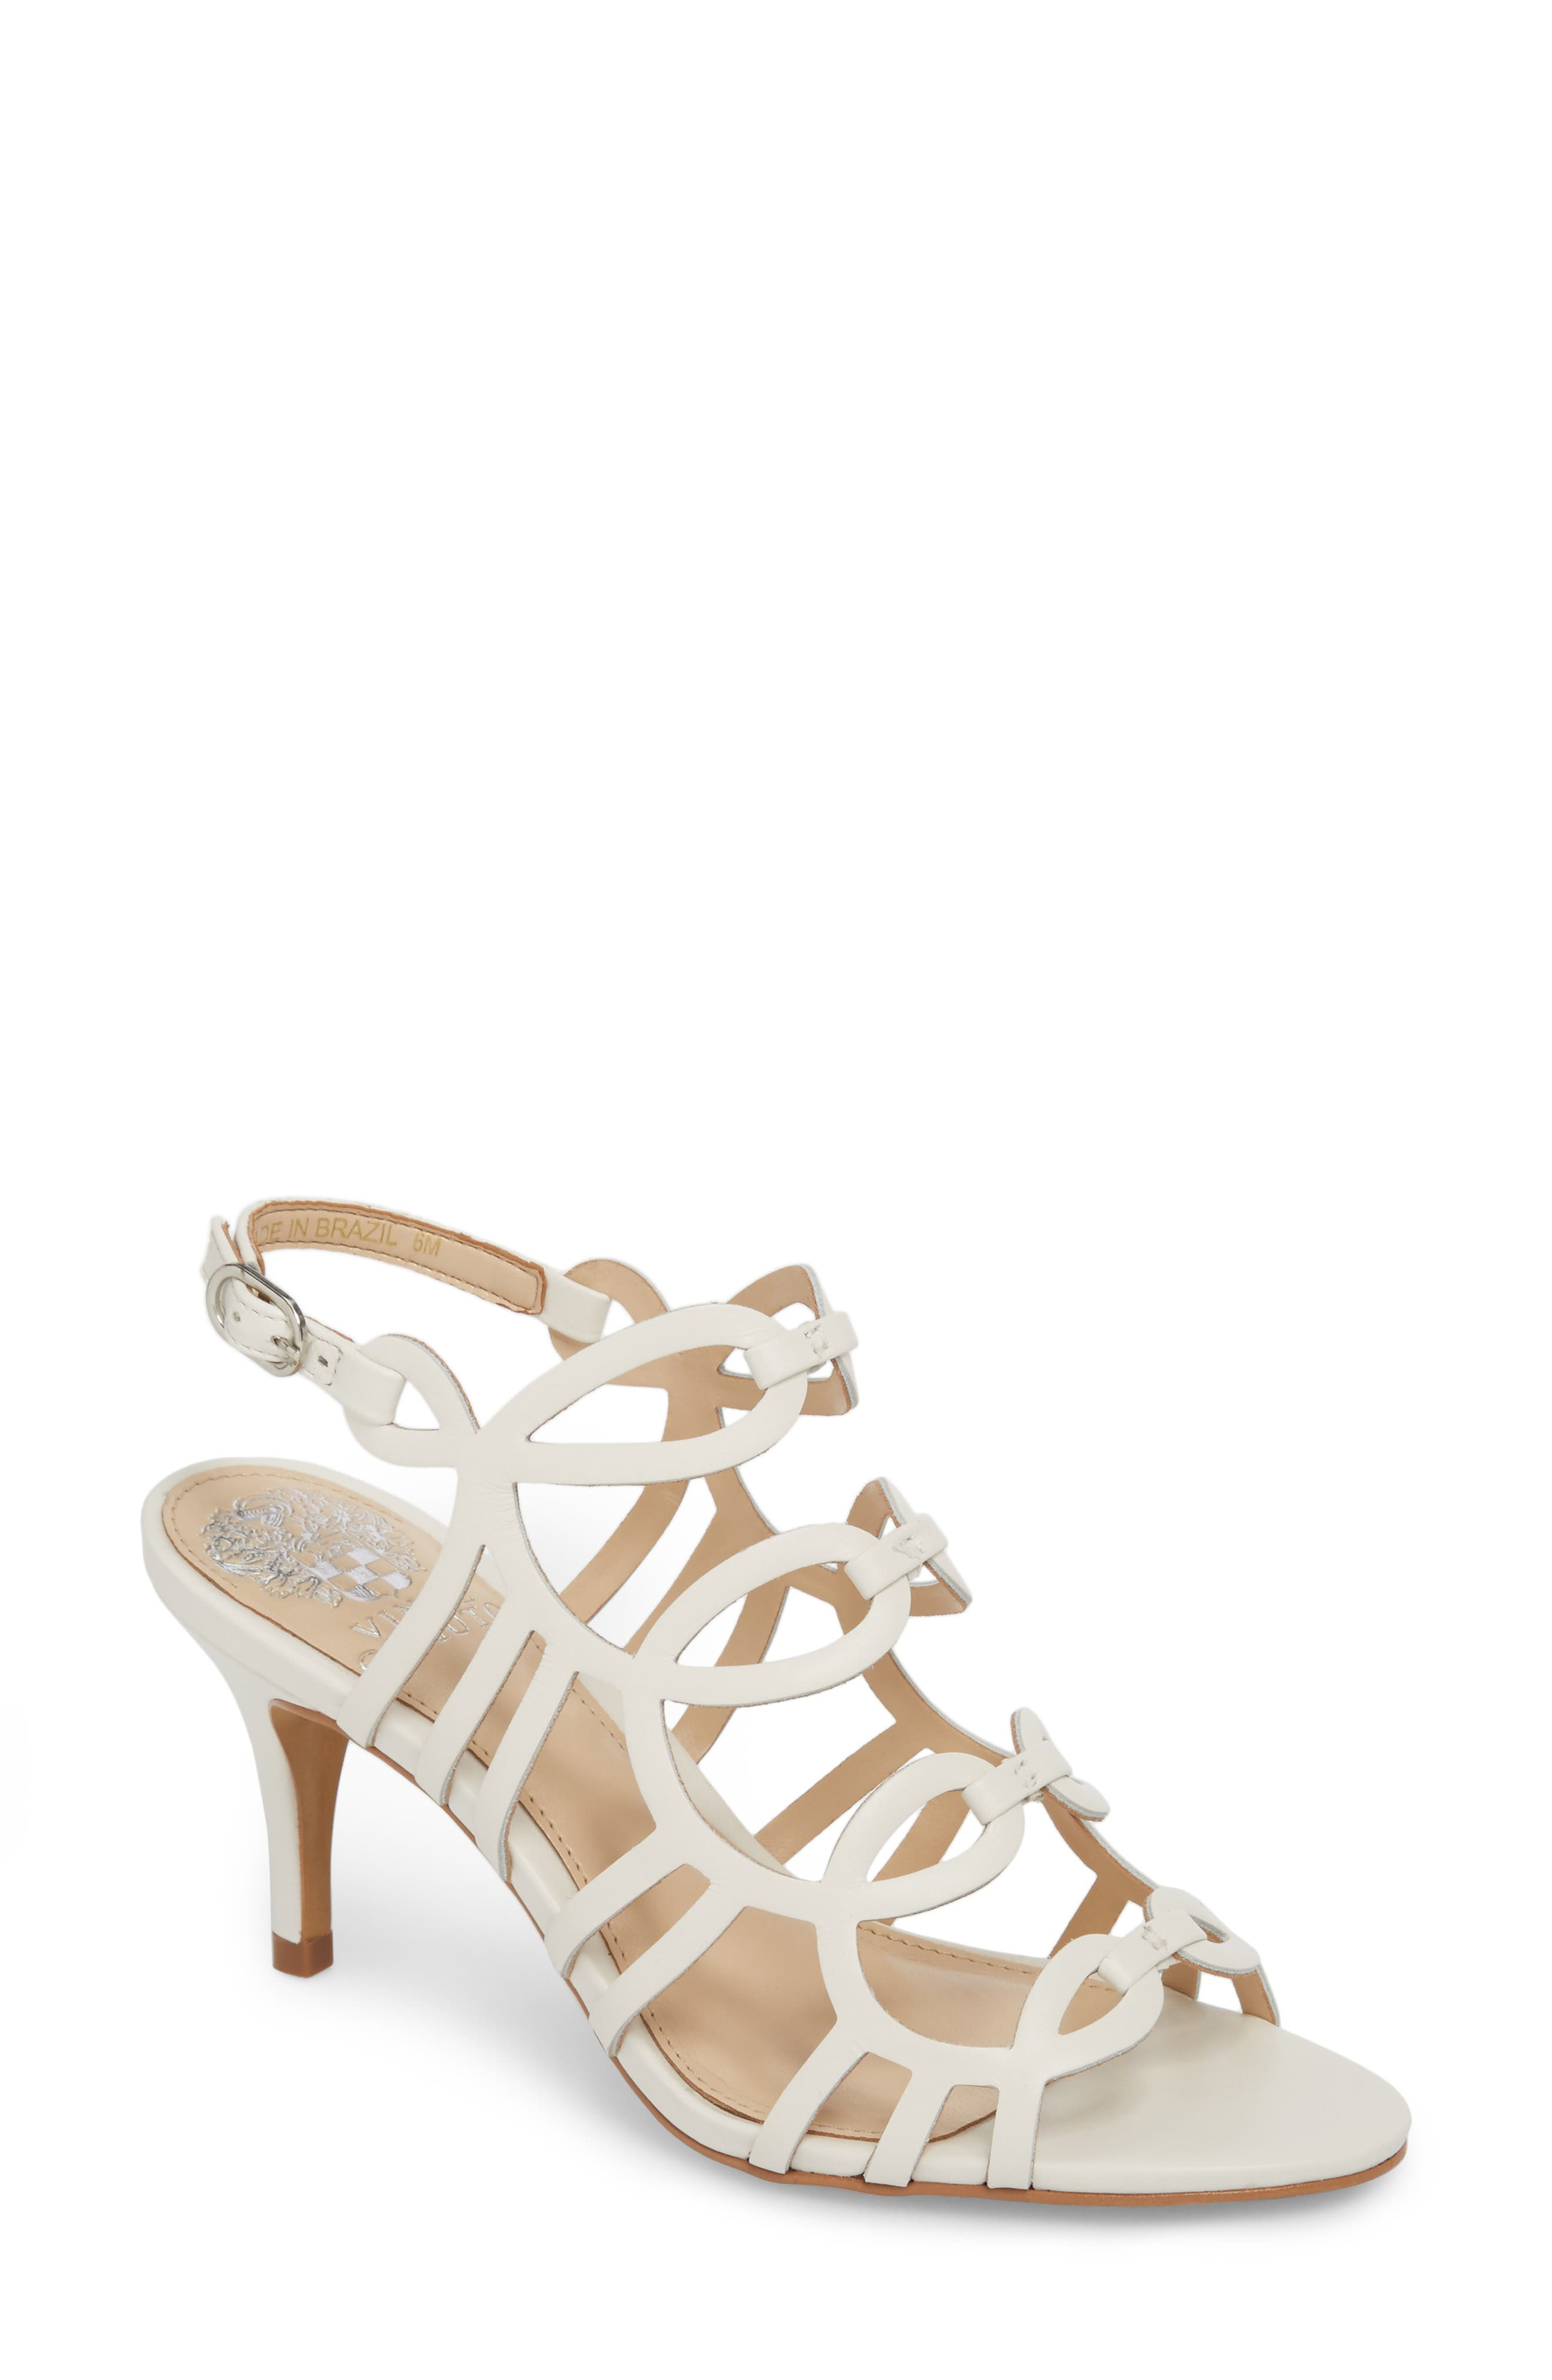 Petina Sandal,                         Main,                         color, WHITE LEATHER